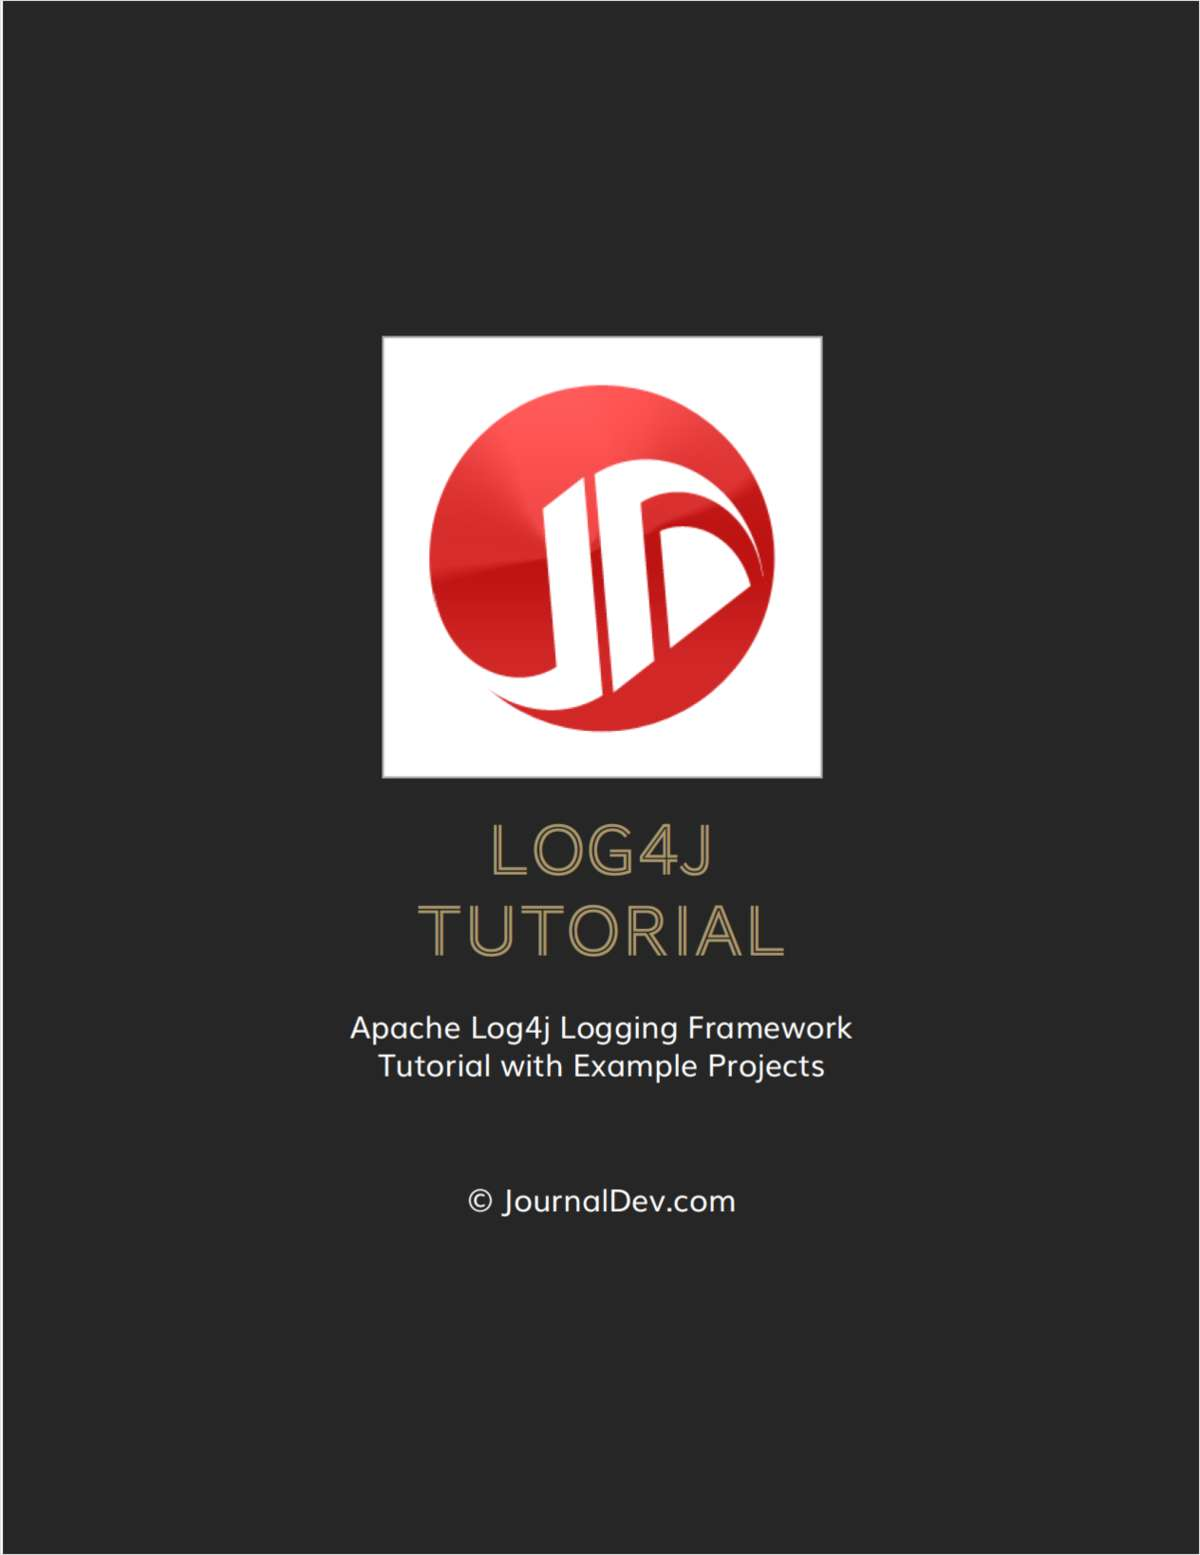 Log4j Tutorial